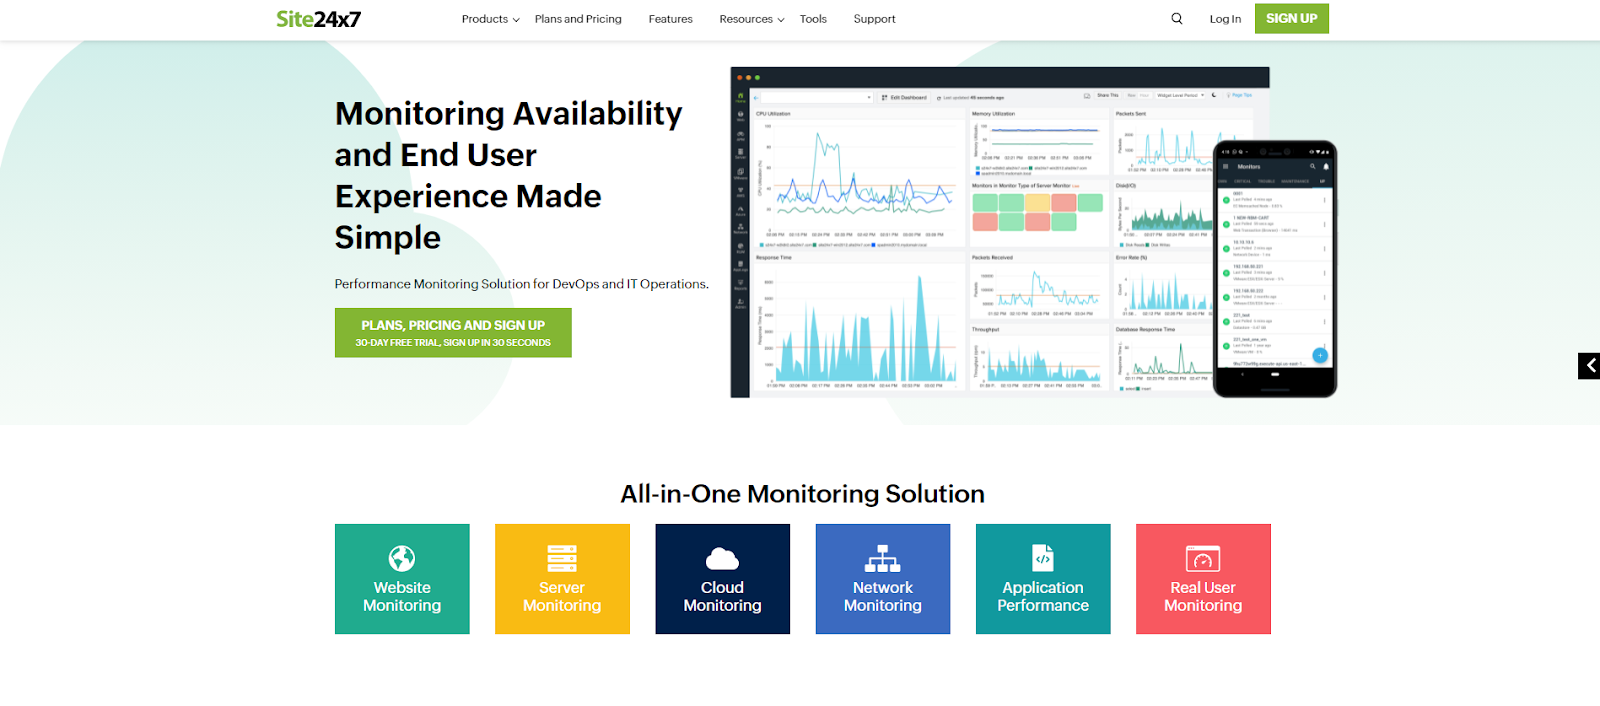 Mac Network Monitoring Software - Site24x7